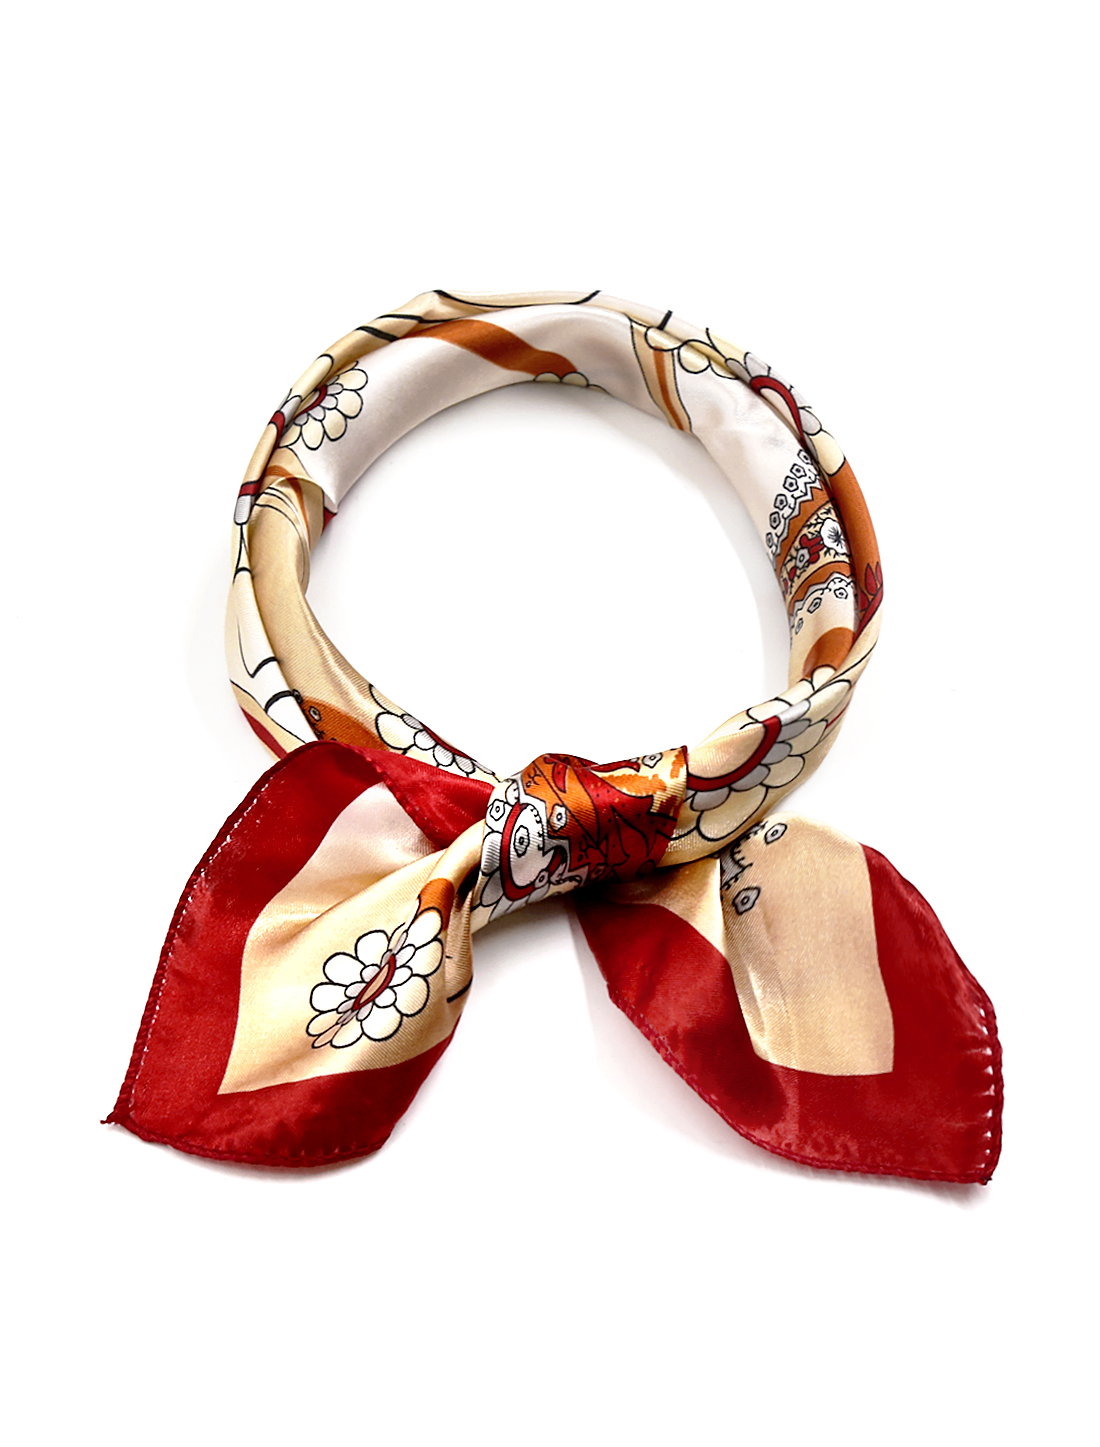 Women Square Shaped Paisleys Floral Prints Kerchief Red Beige